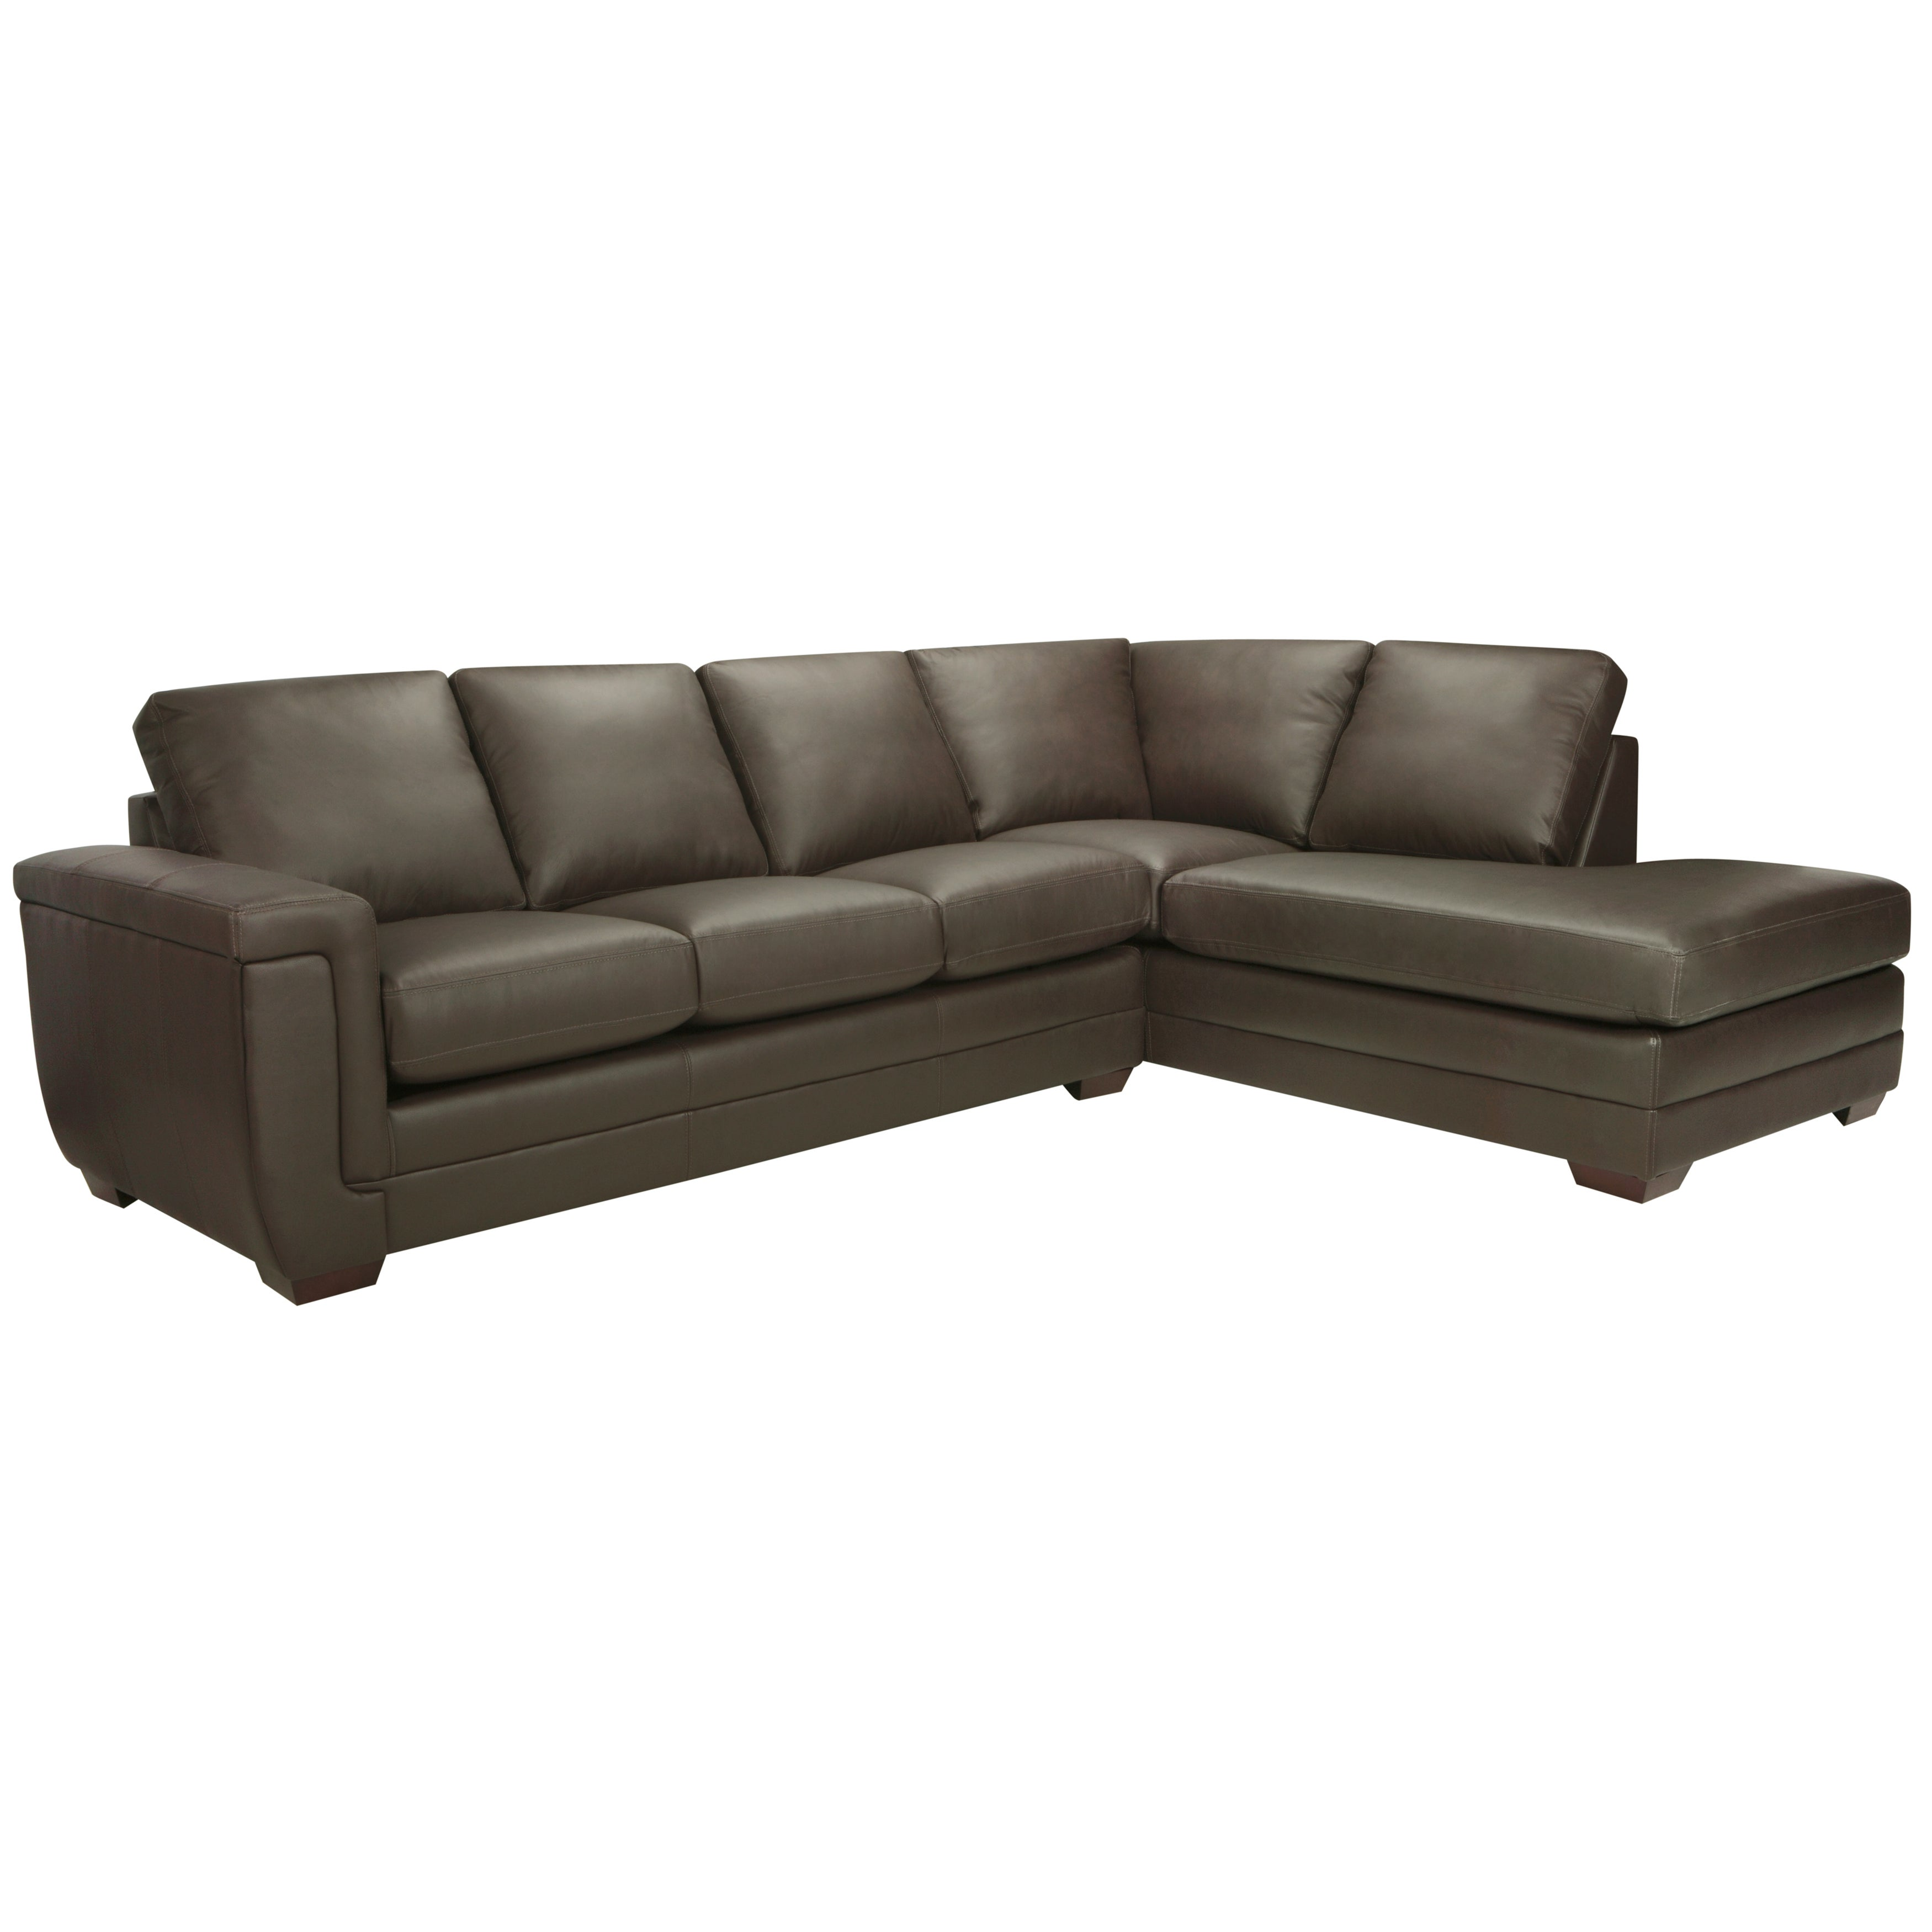 Italian Leather Sofa Gumtree: Chocolate Leather Couch